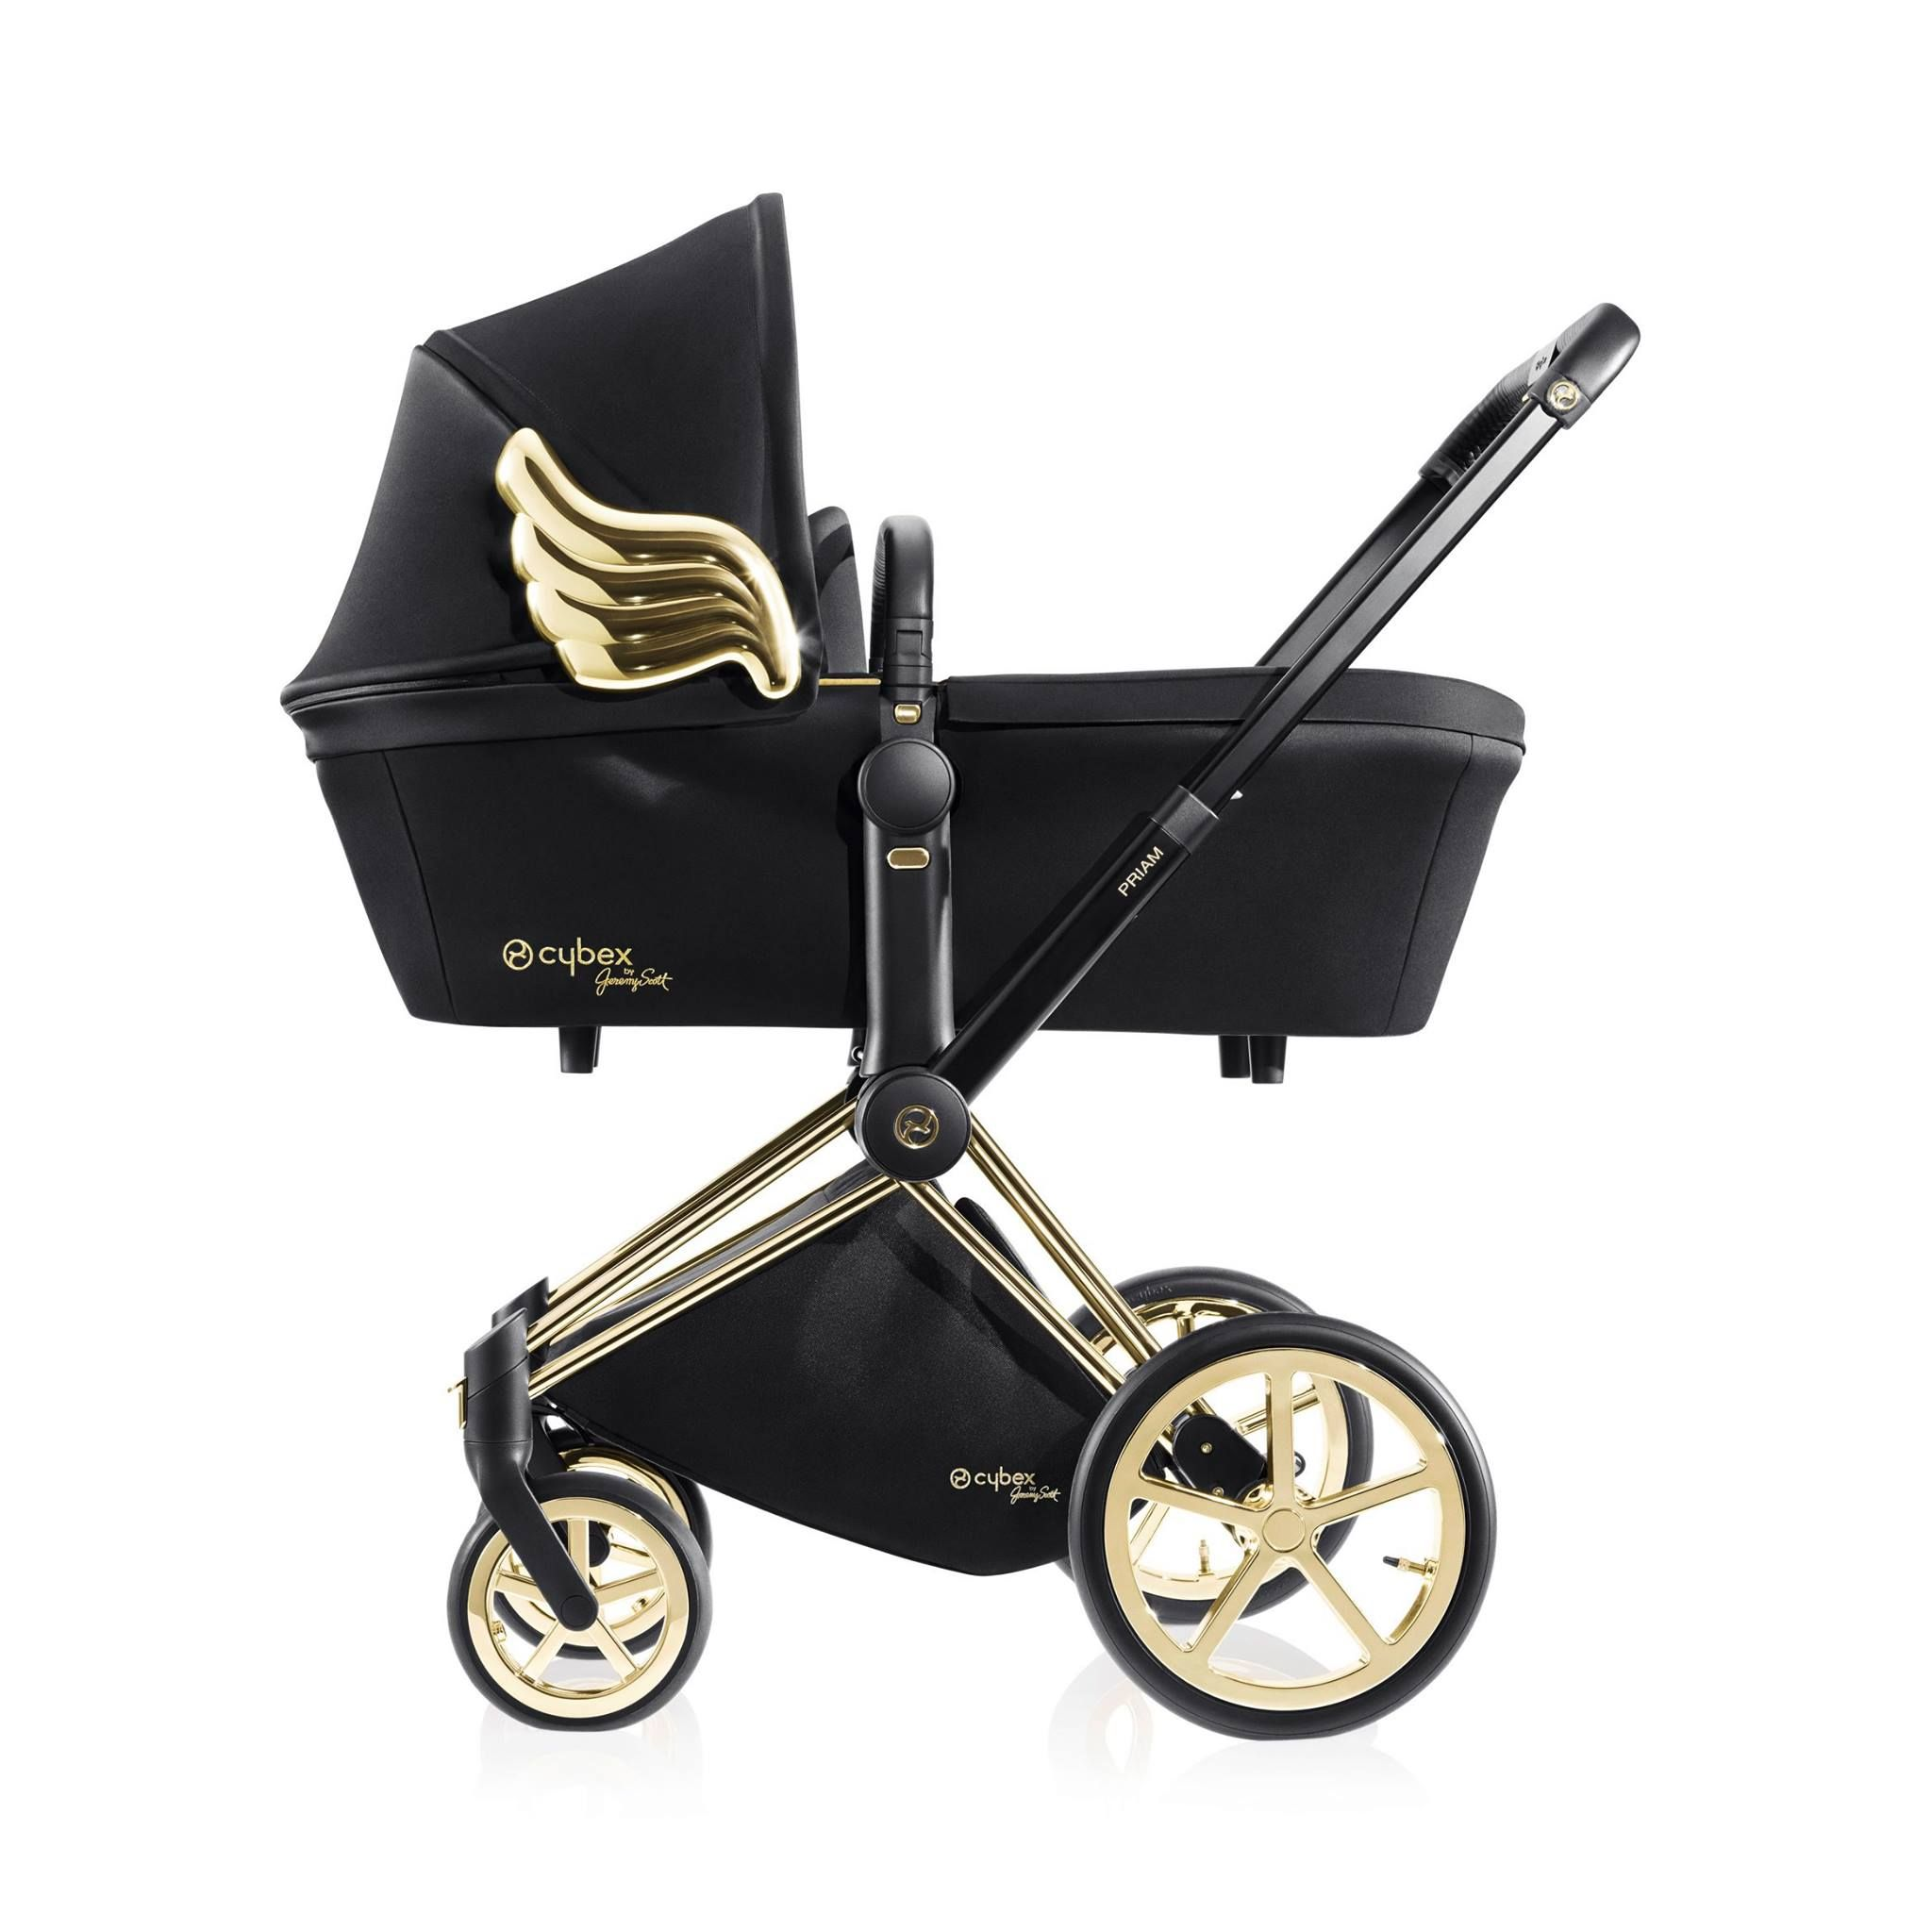 cybex priam Google Search Baby strollers, Prams, Baby